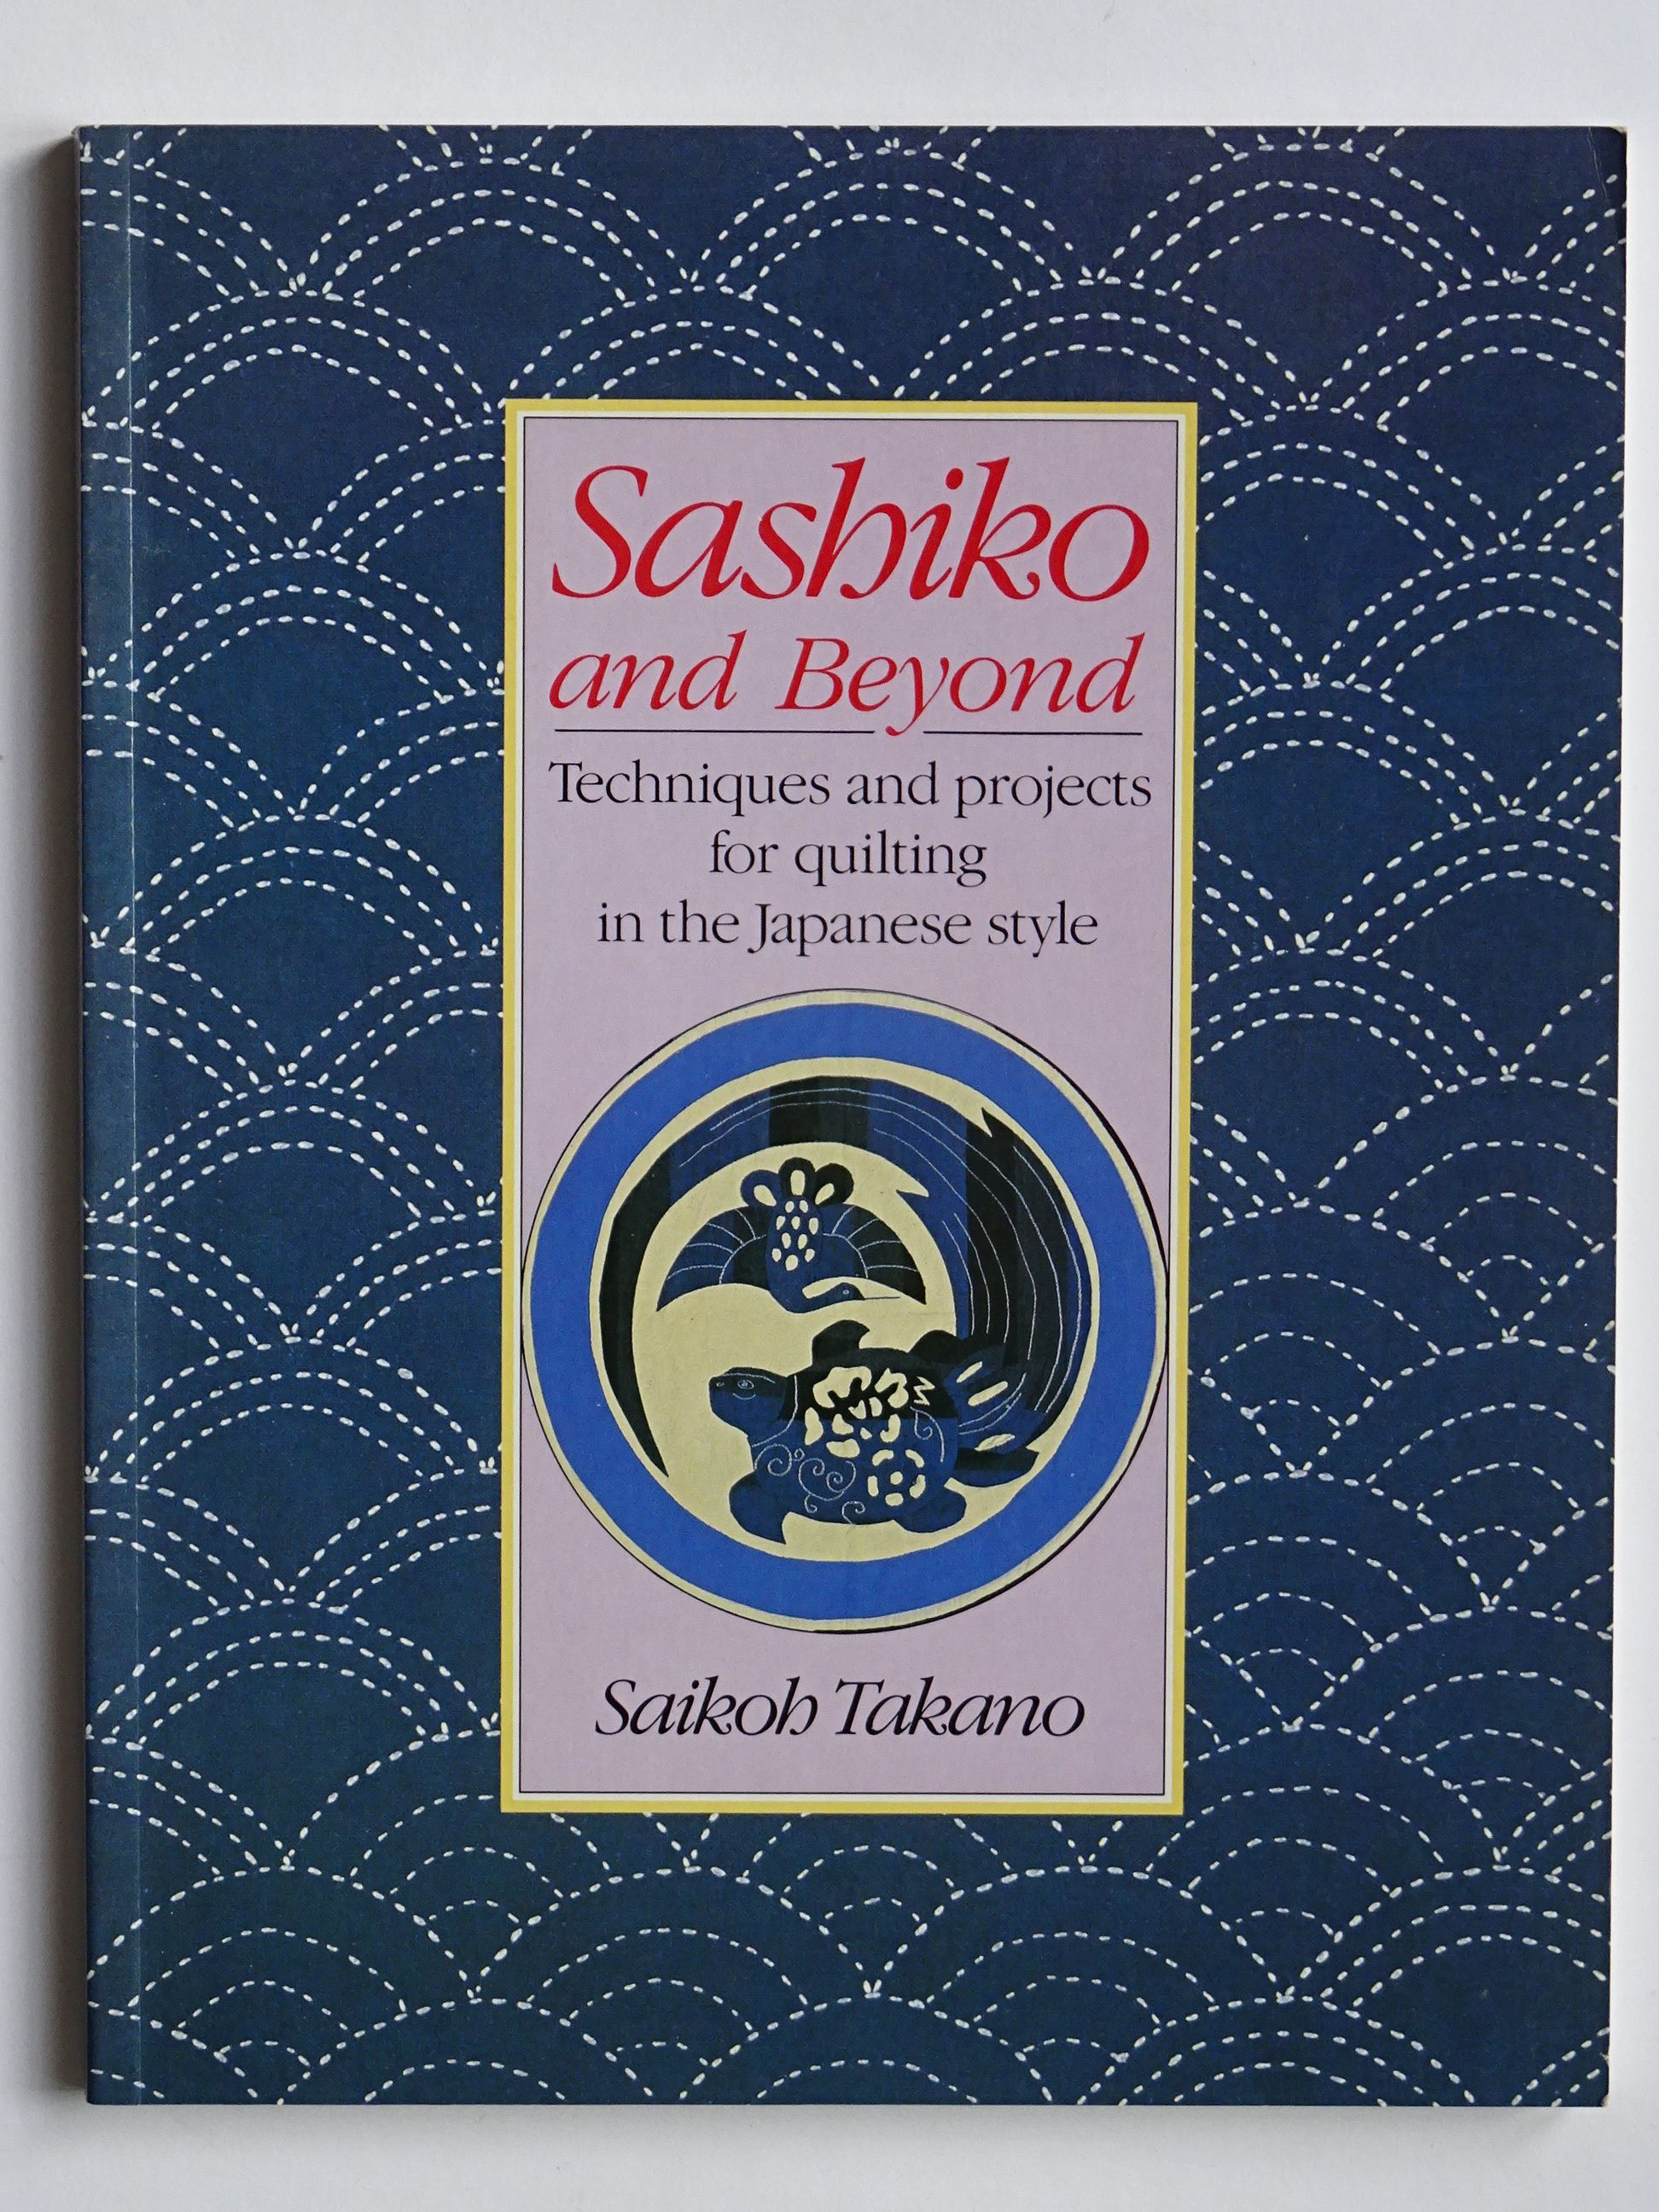 Takano, Saikoh - Sashiko and Beyond.  Techniques and Projects for Quilting in the Japanese Style.